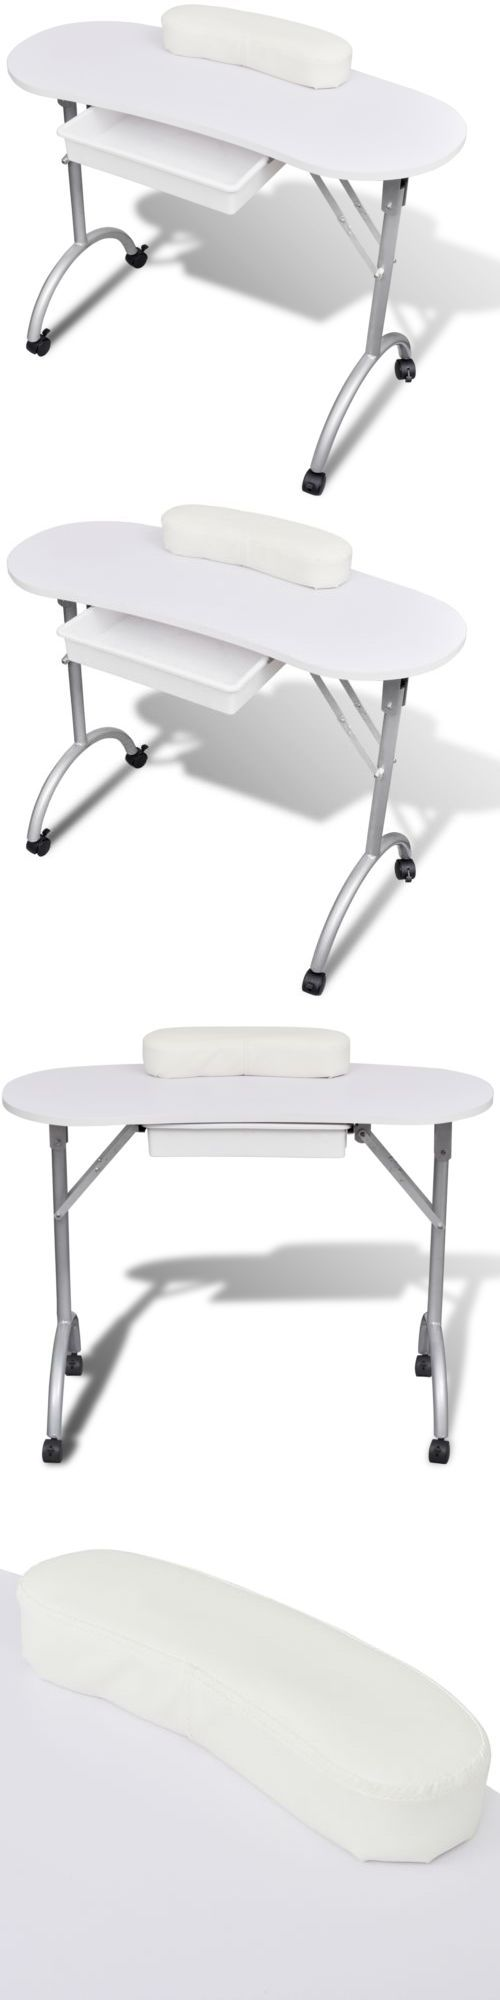 small reception desk for spas in stock